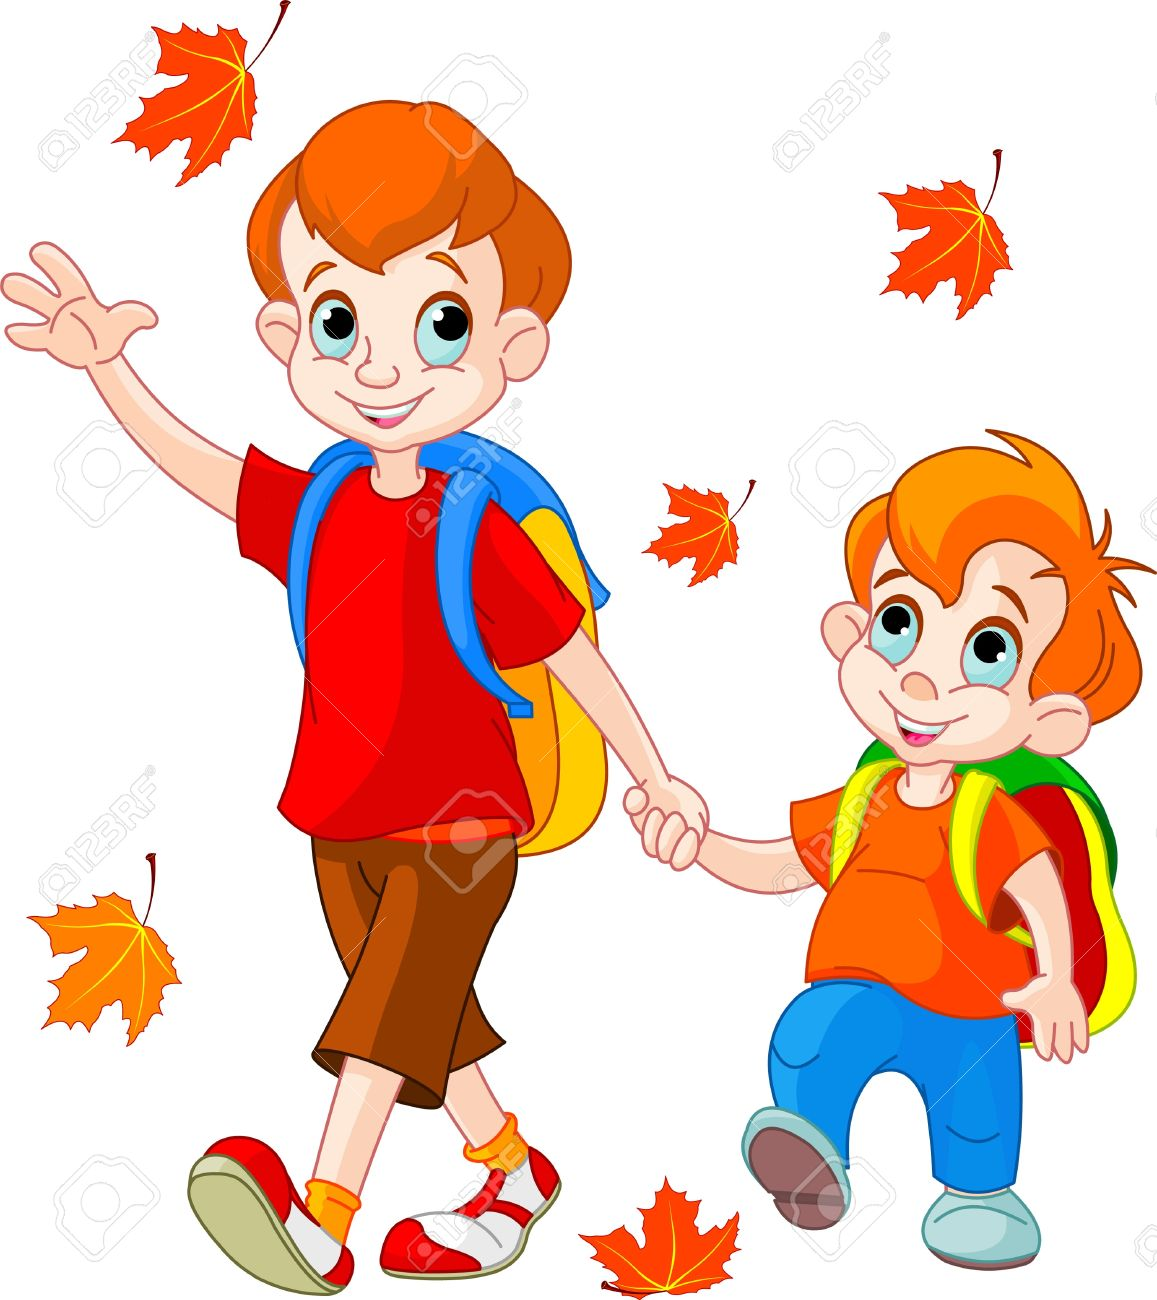 Illustration of two boys go to school - 10343469